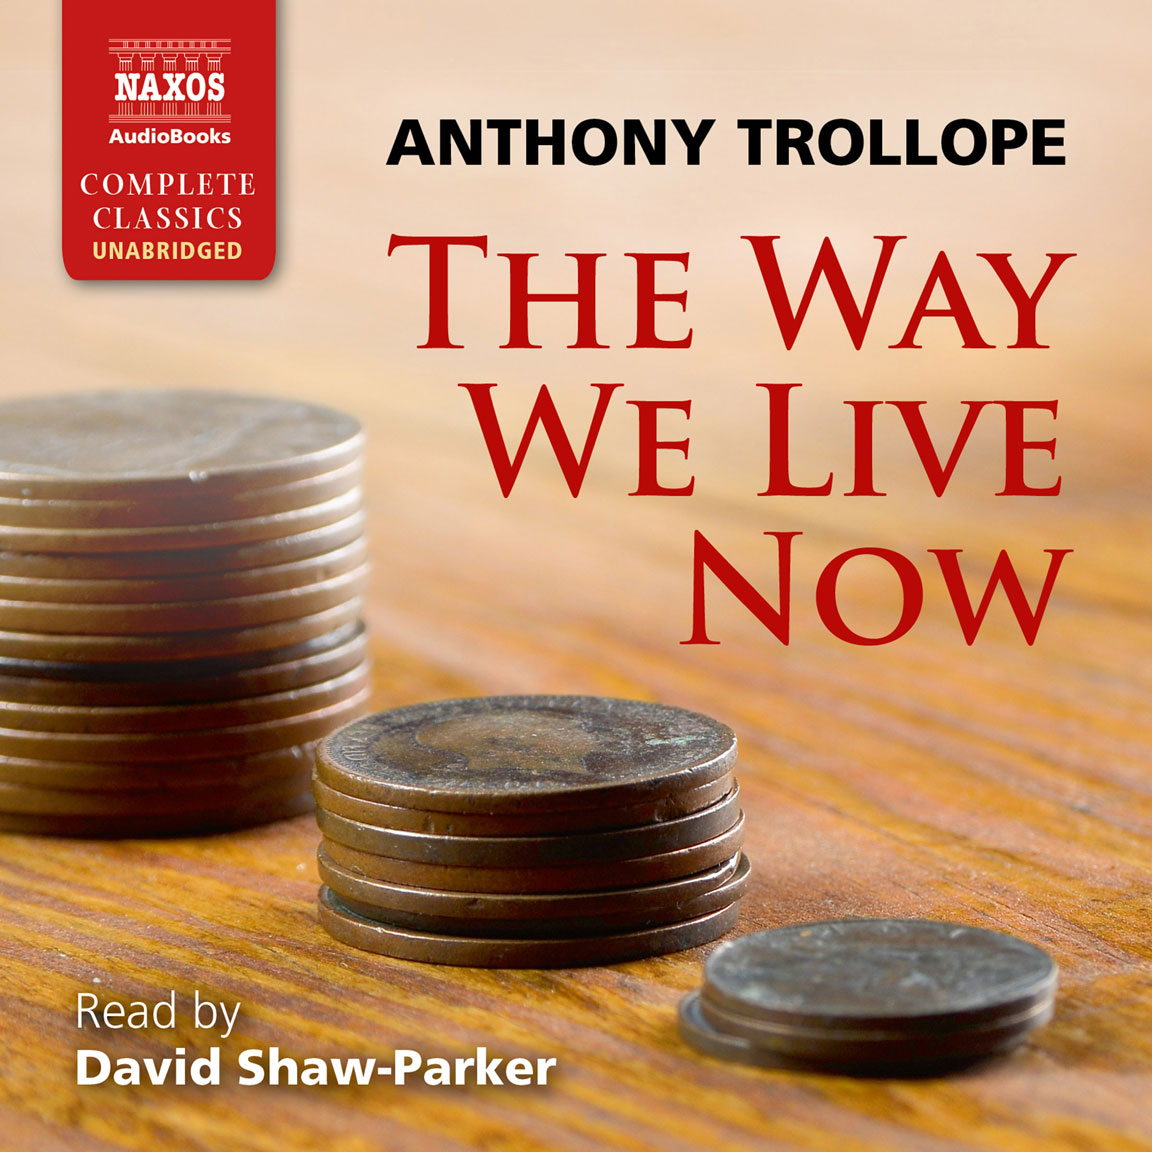 The Way We Live Now (unabridged)